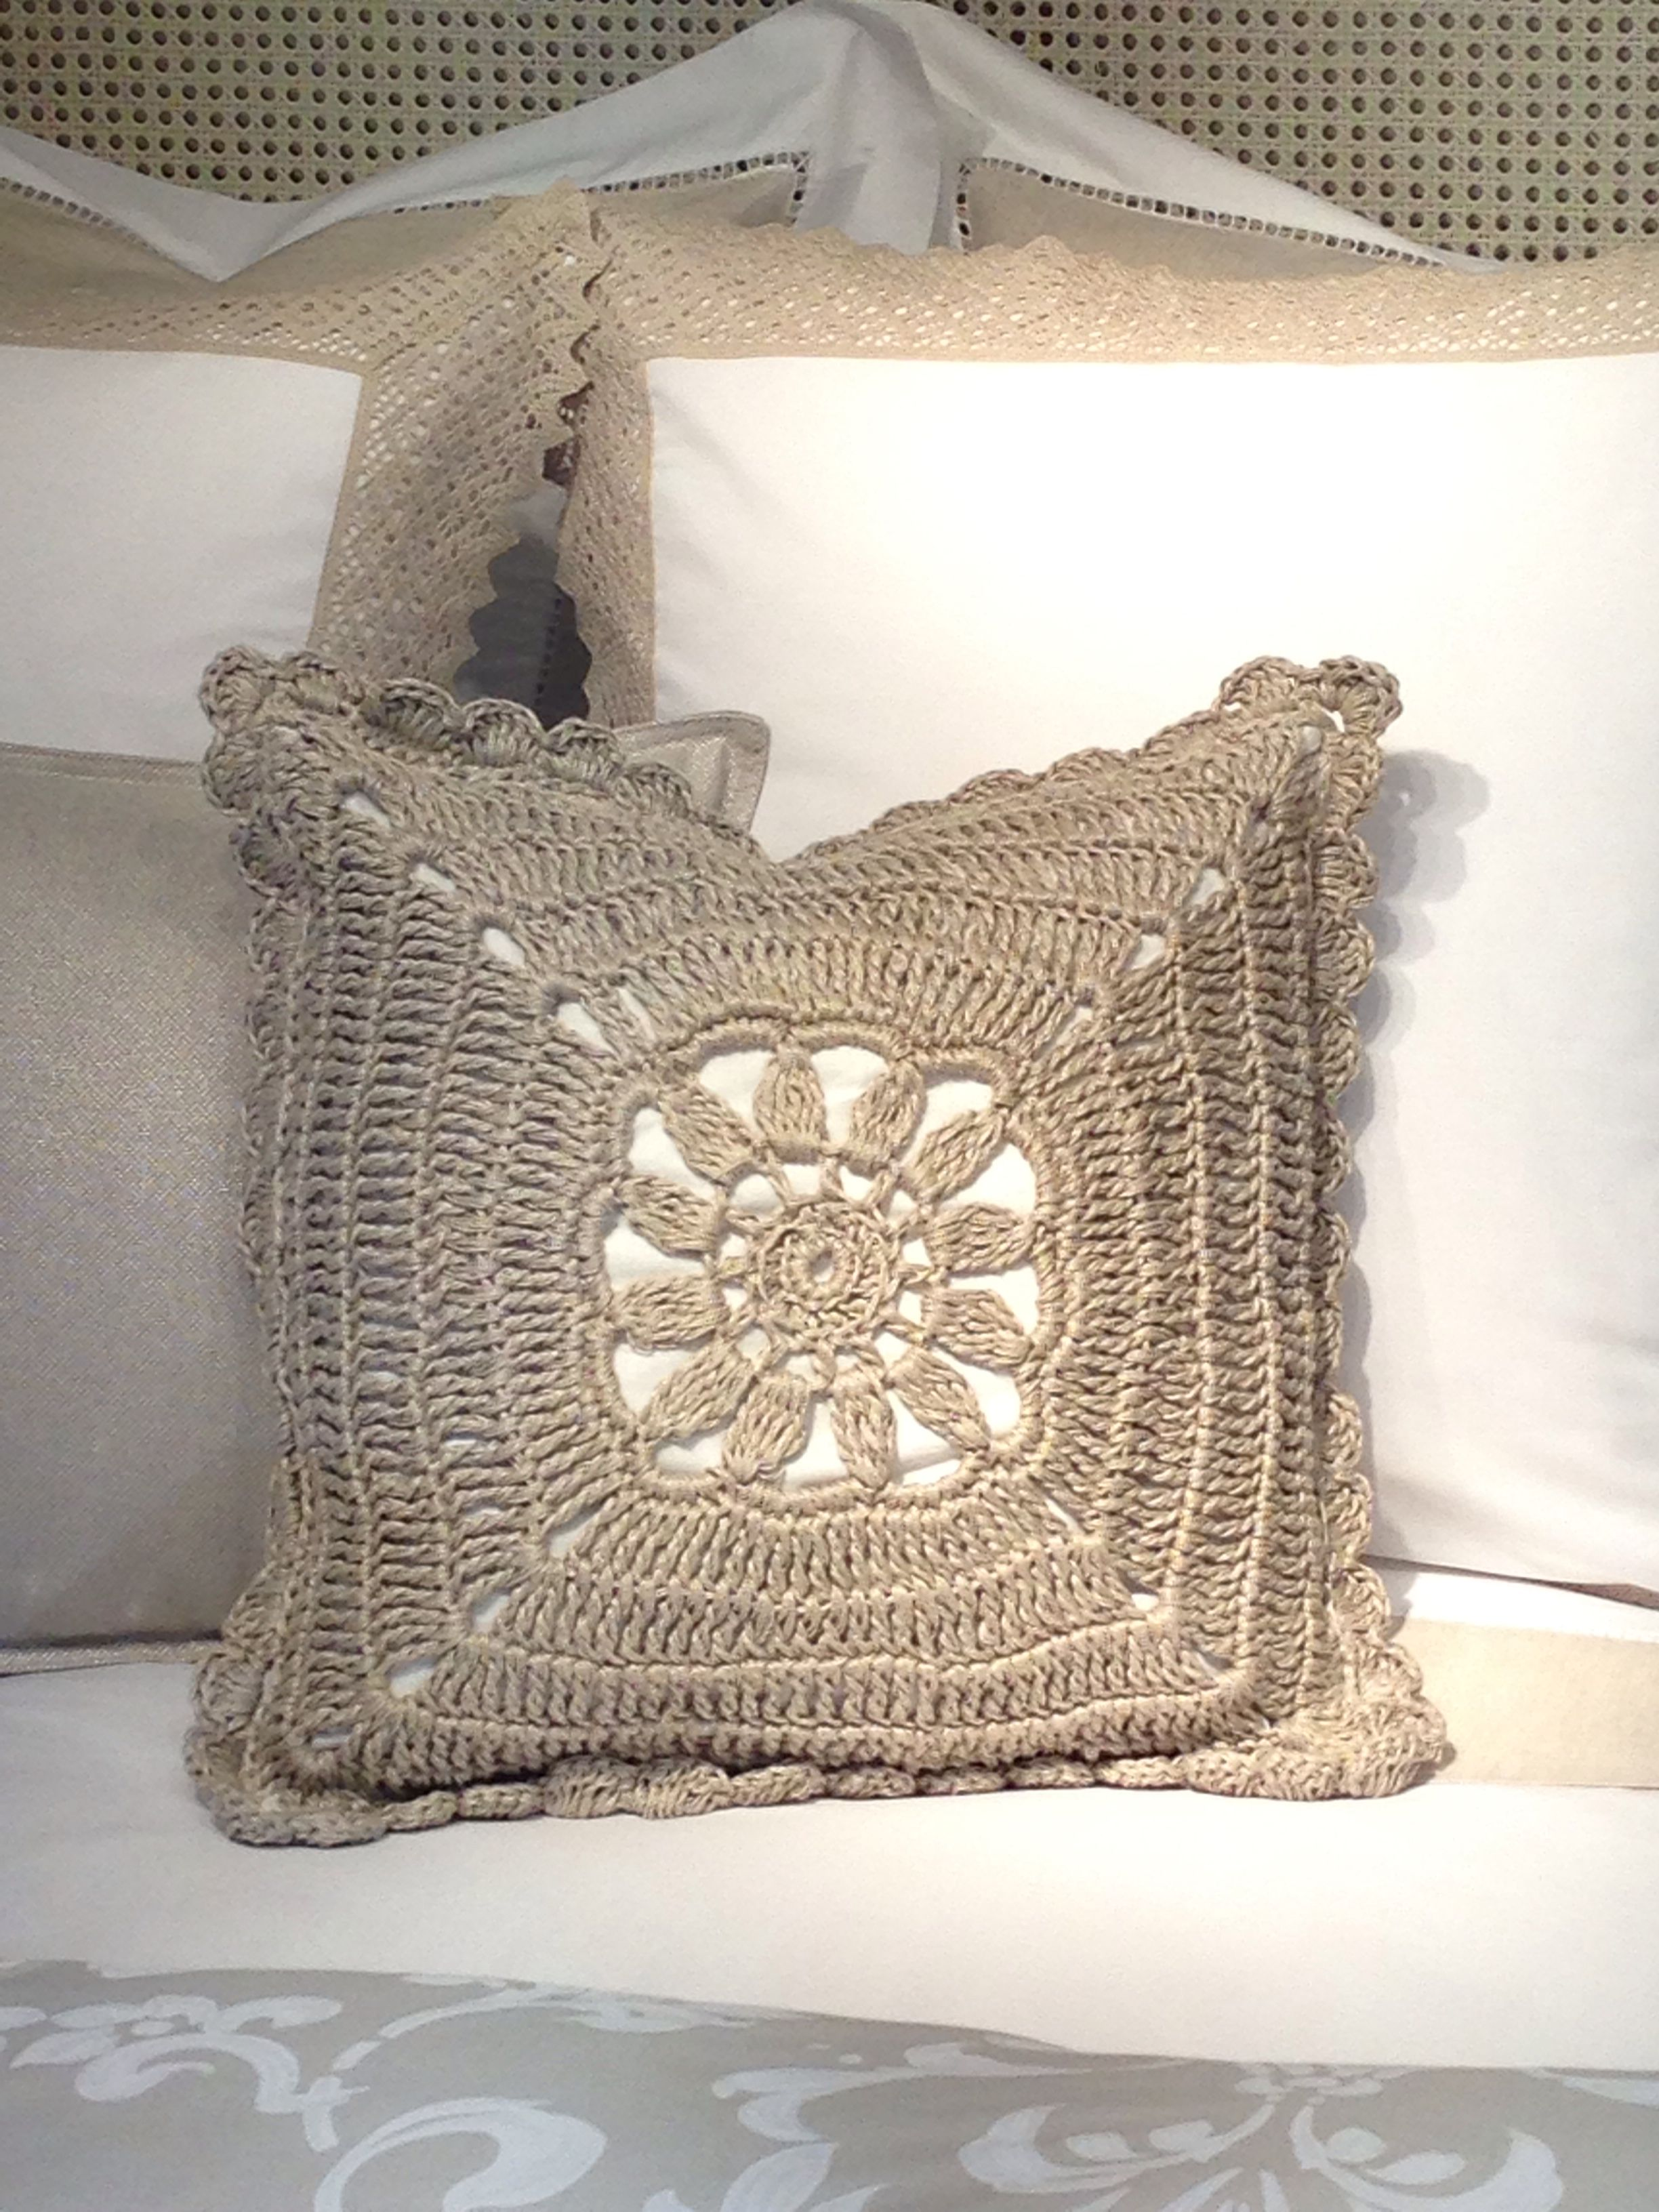 crochet cushion zara home crochet pinterest. Black Bedroom Furniture Sets. Home Design Ideas